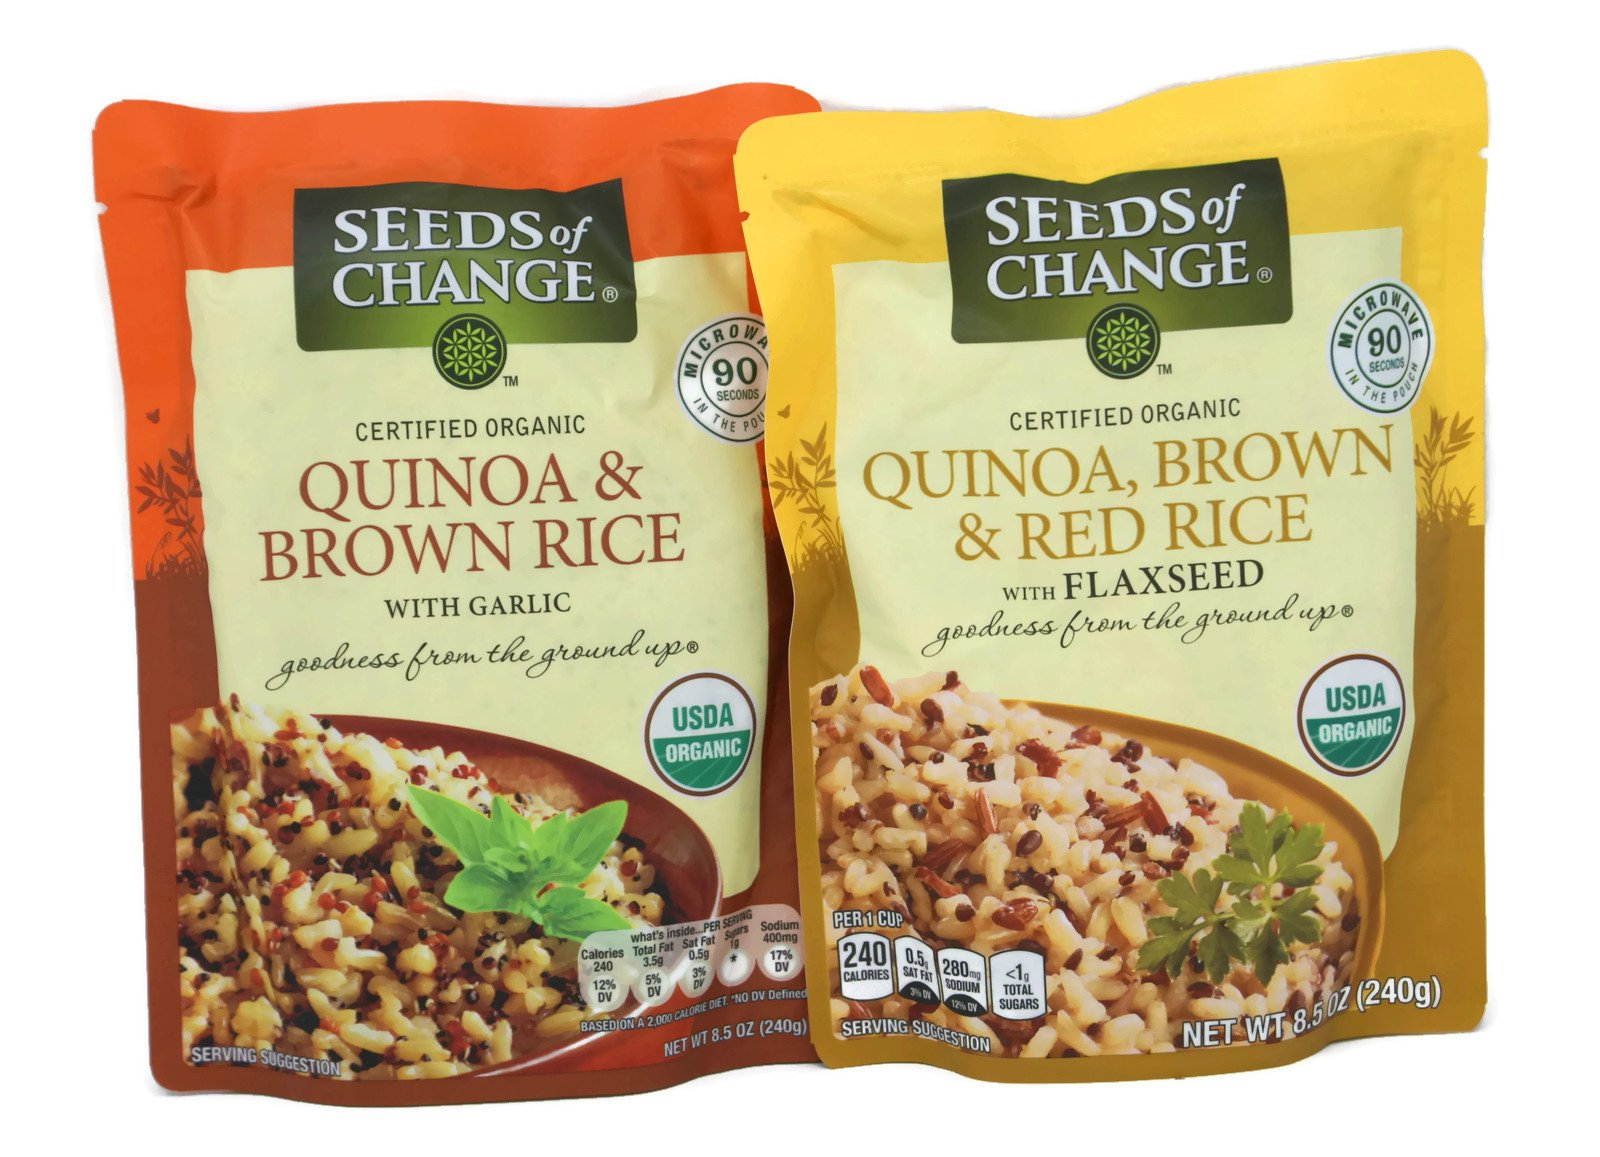 General Variety Pack - Seeds Of Change Organic Rice (8.5oz) - Quinoa, Brown & Red Rice W/Flaxseed, Quinoa & Brown Rice W/Garlic